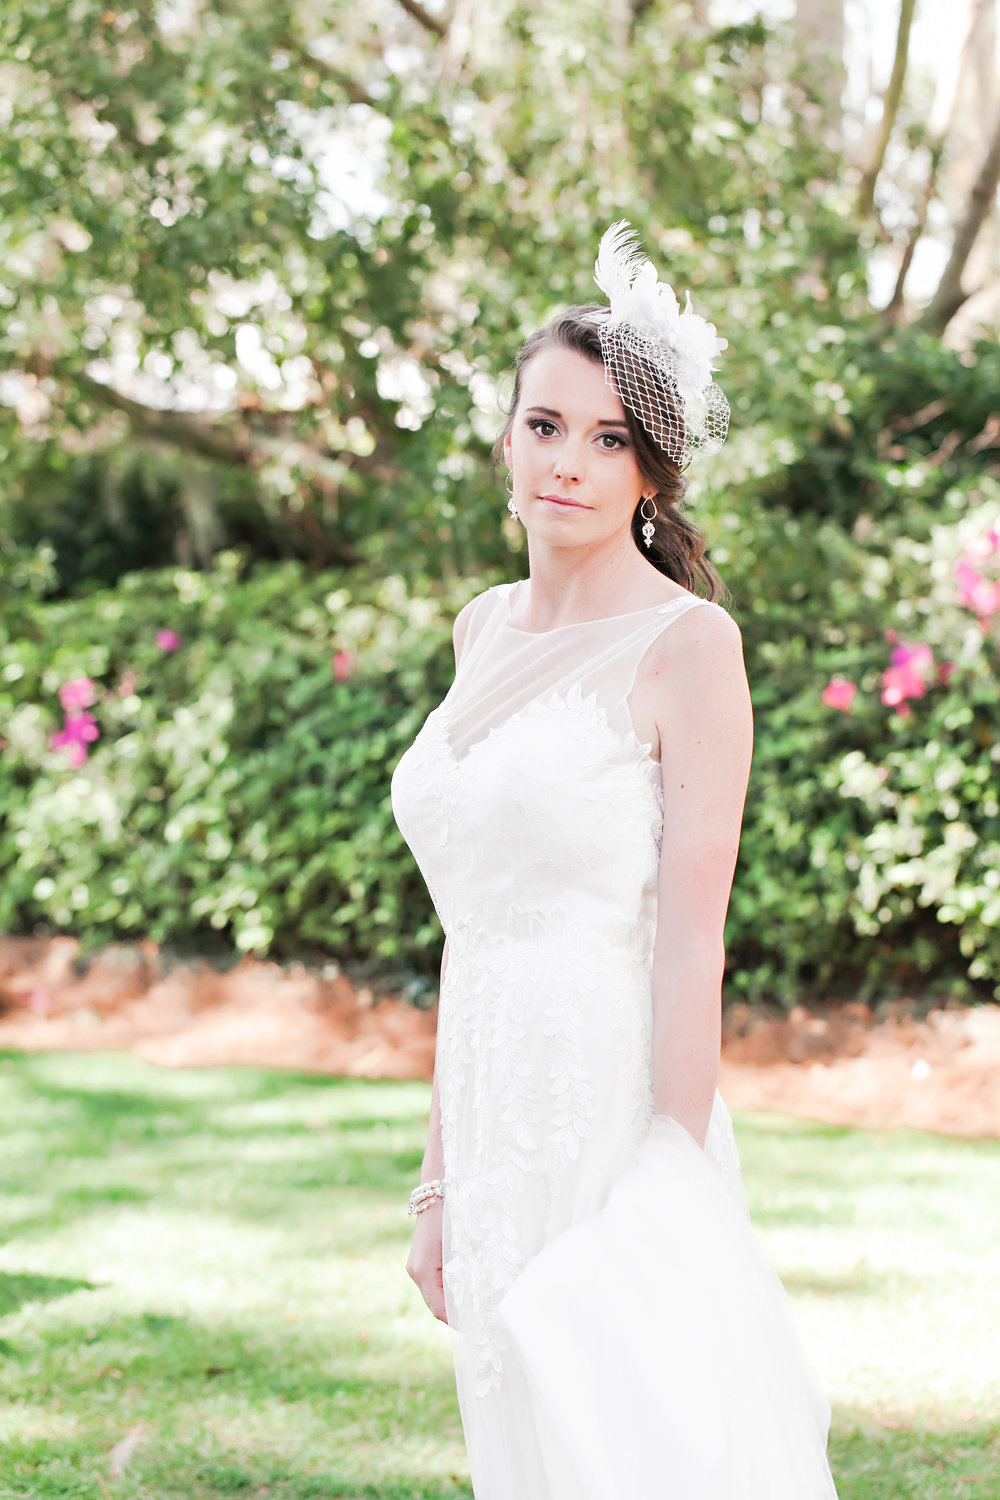 heather-kline-photography-oldfield-river-club-wedding-savannah-wedding-photographer-ti-adora-ivory-and-beau-bridal-boutique-savannah-wedding-dresses-savannah-bridal-boutique-savannah-bridal-gowns-bridal-accessories-savannah-wedding-planner-20.jpg